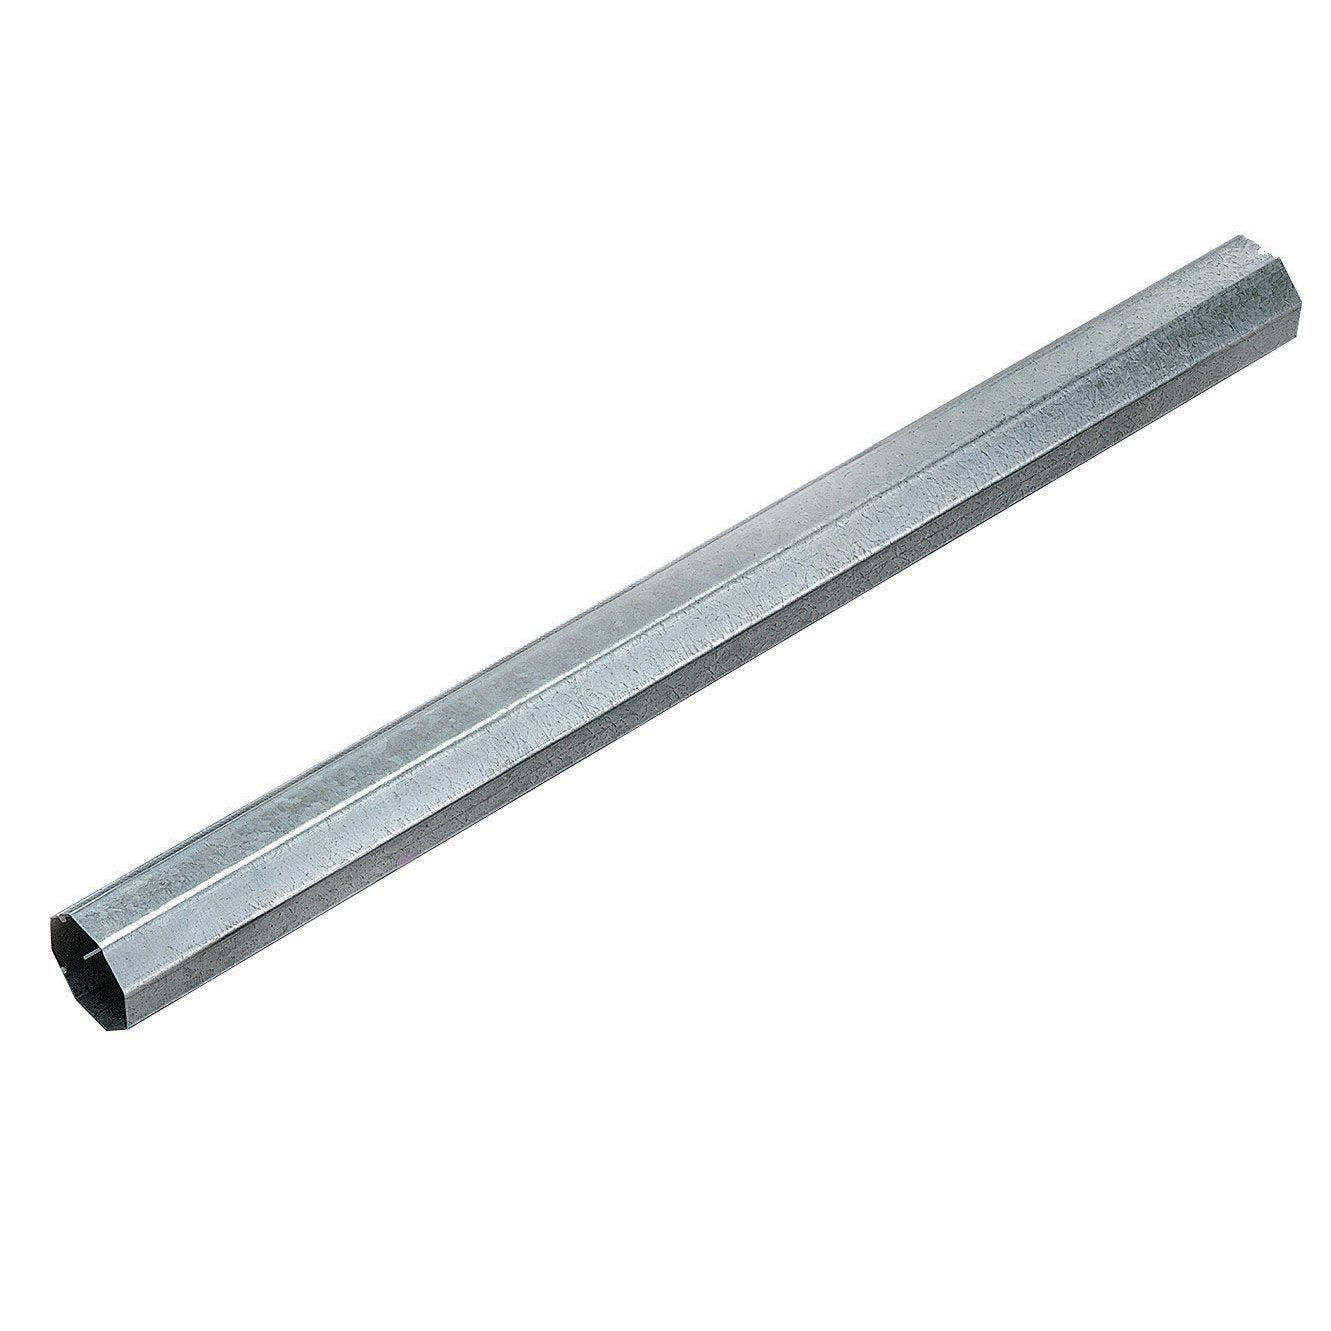 Rallonge de tube windoroll pour motorisation de volet for Tube rectangulaire alu leroy merlin